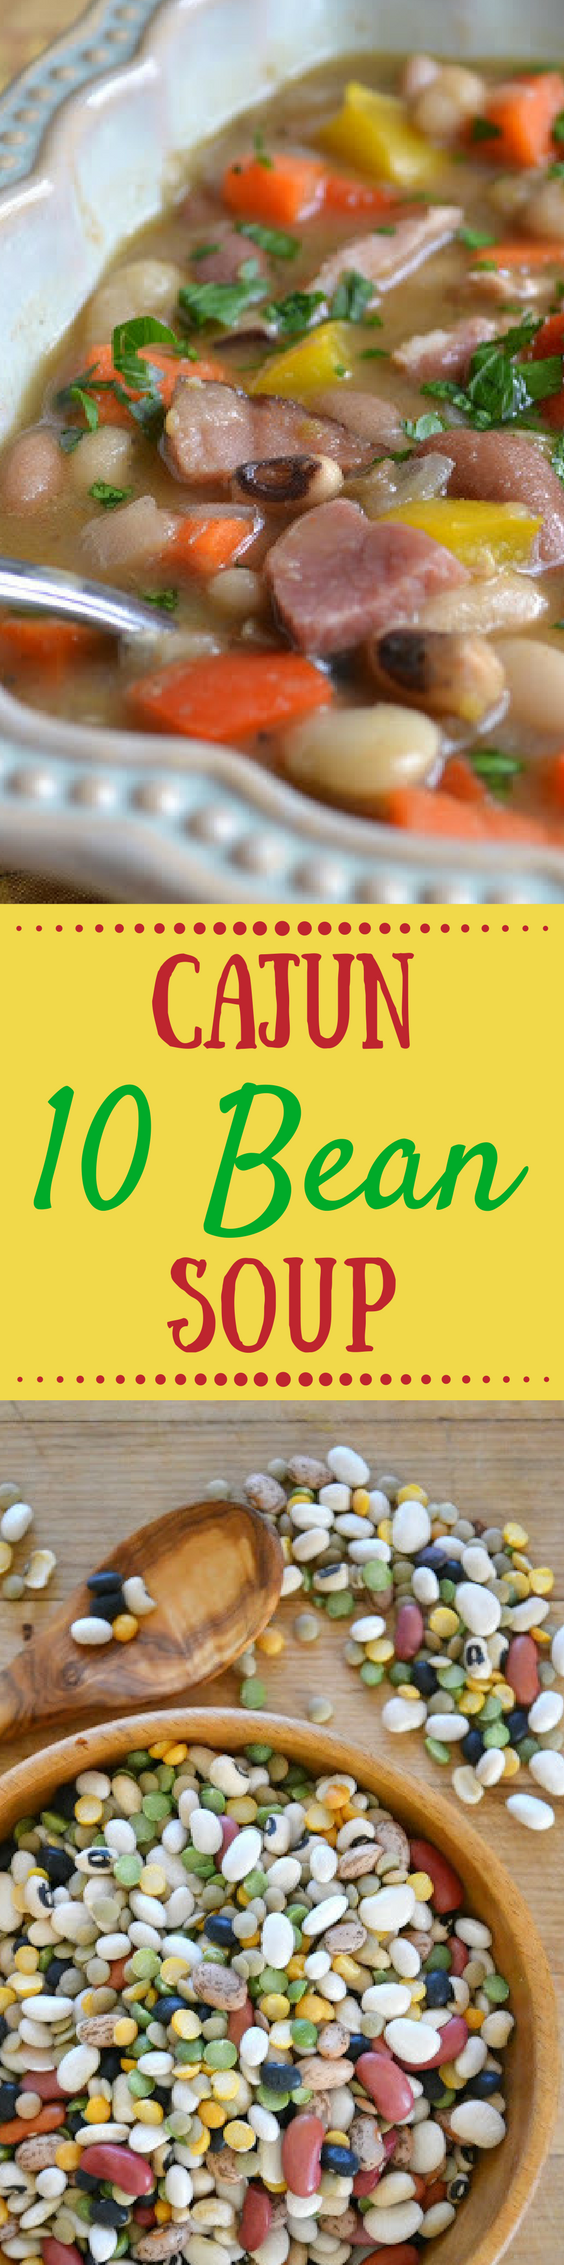 Cajun Ten Bean and Ham Soup is bursting with colorful flavor and hearty nutrition!~ theviewfromgreatisland.com